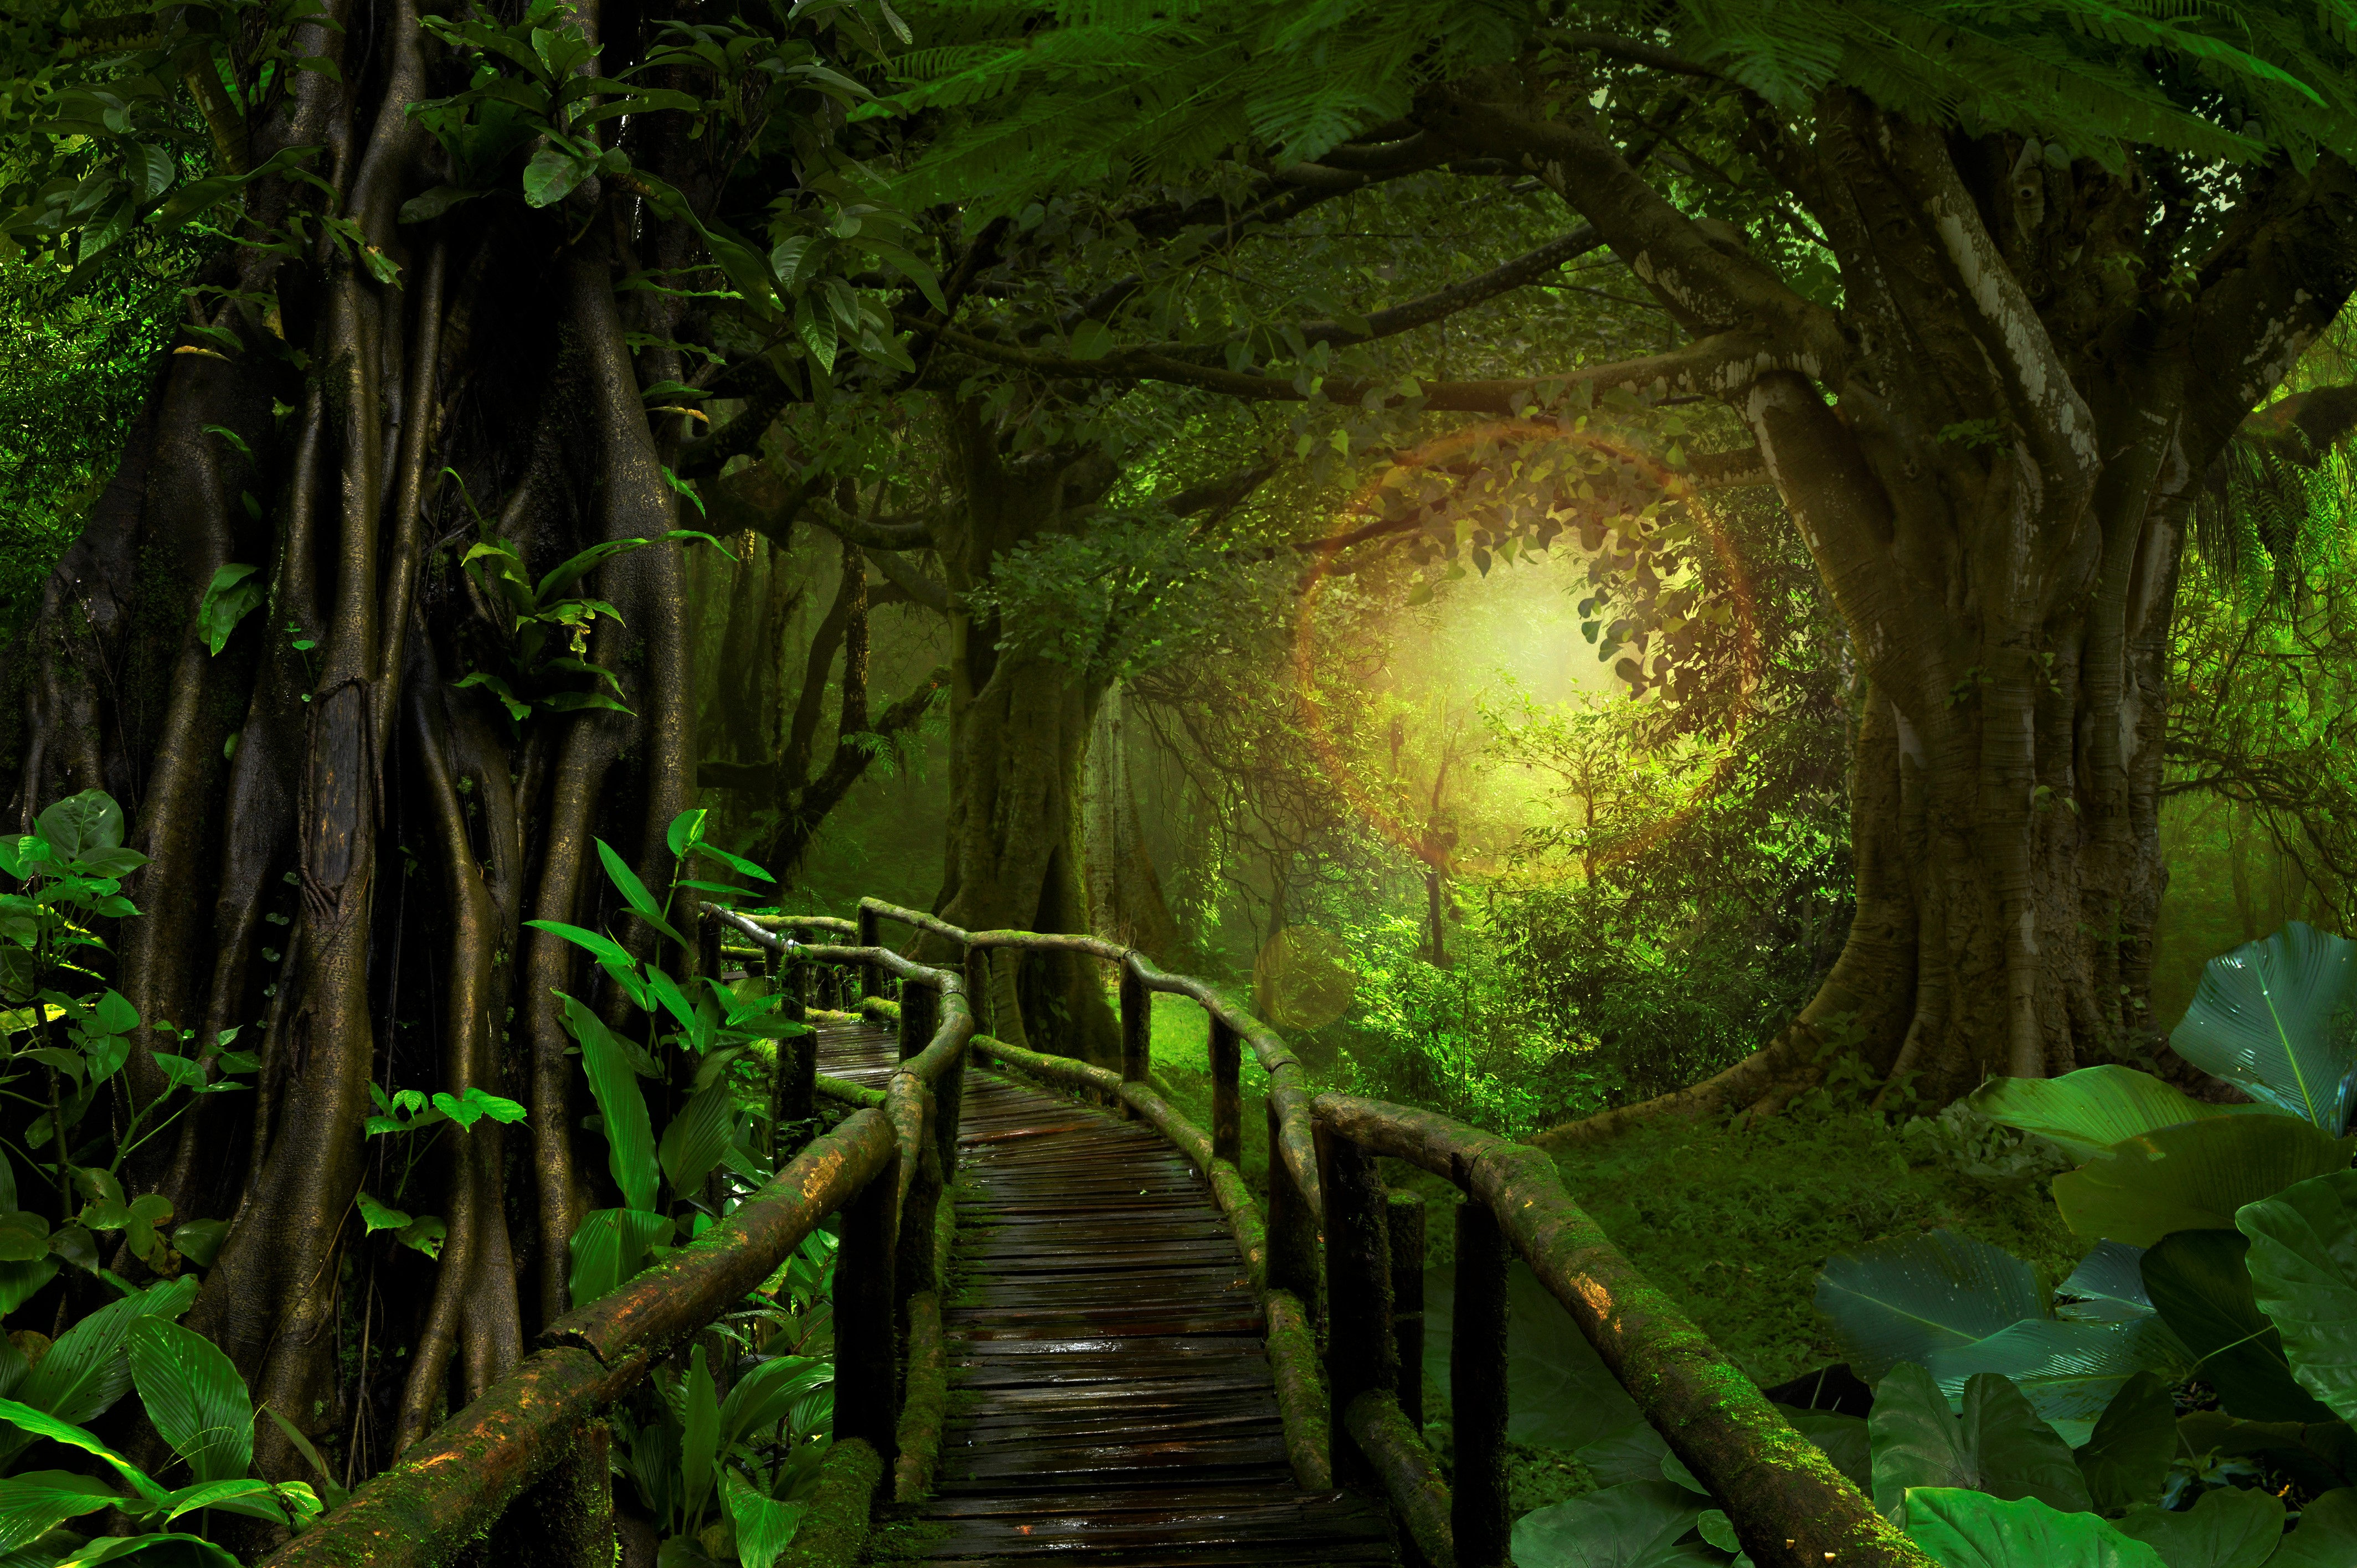 Bridge In Tropical Forest 4k Ultra HD Wallpaper And Background Image